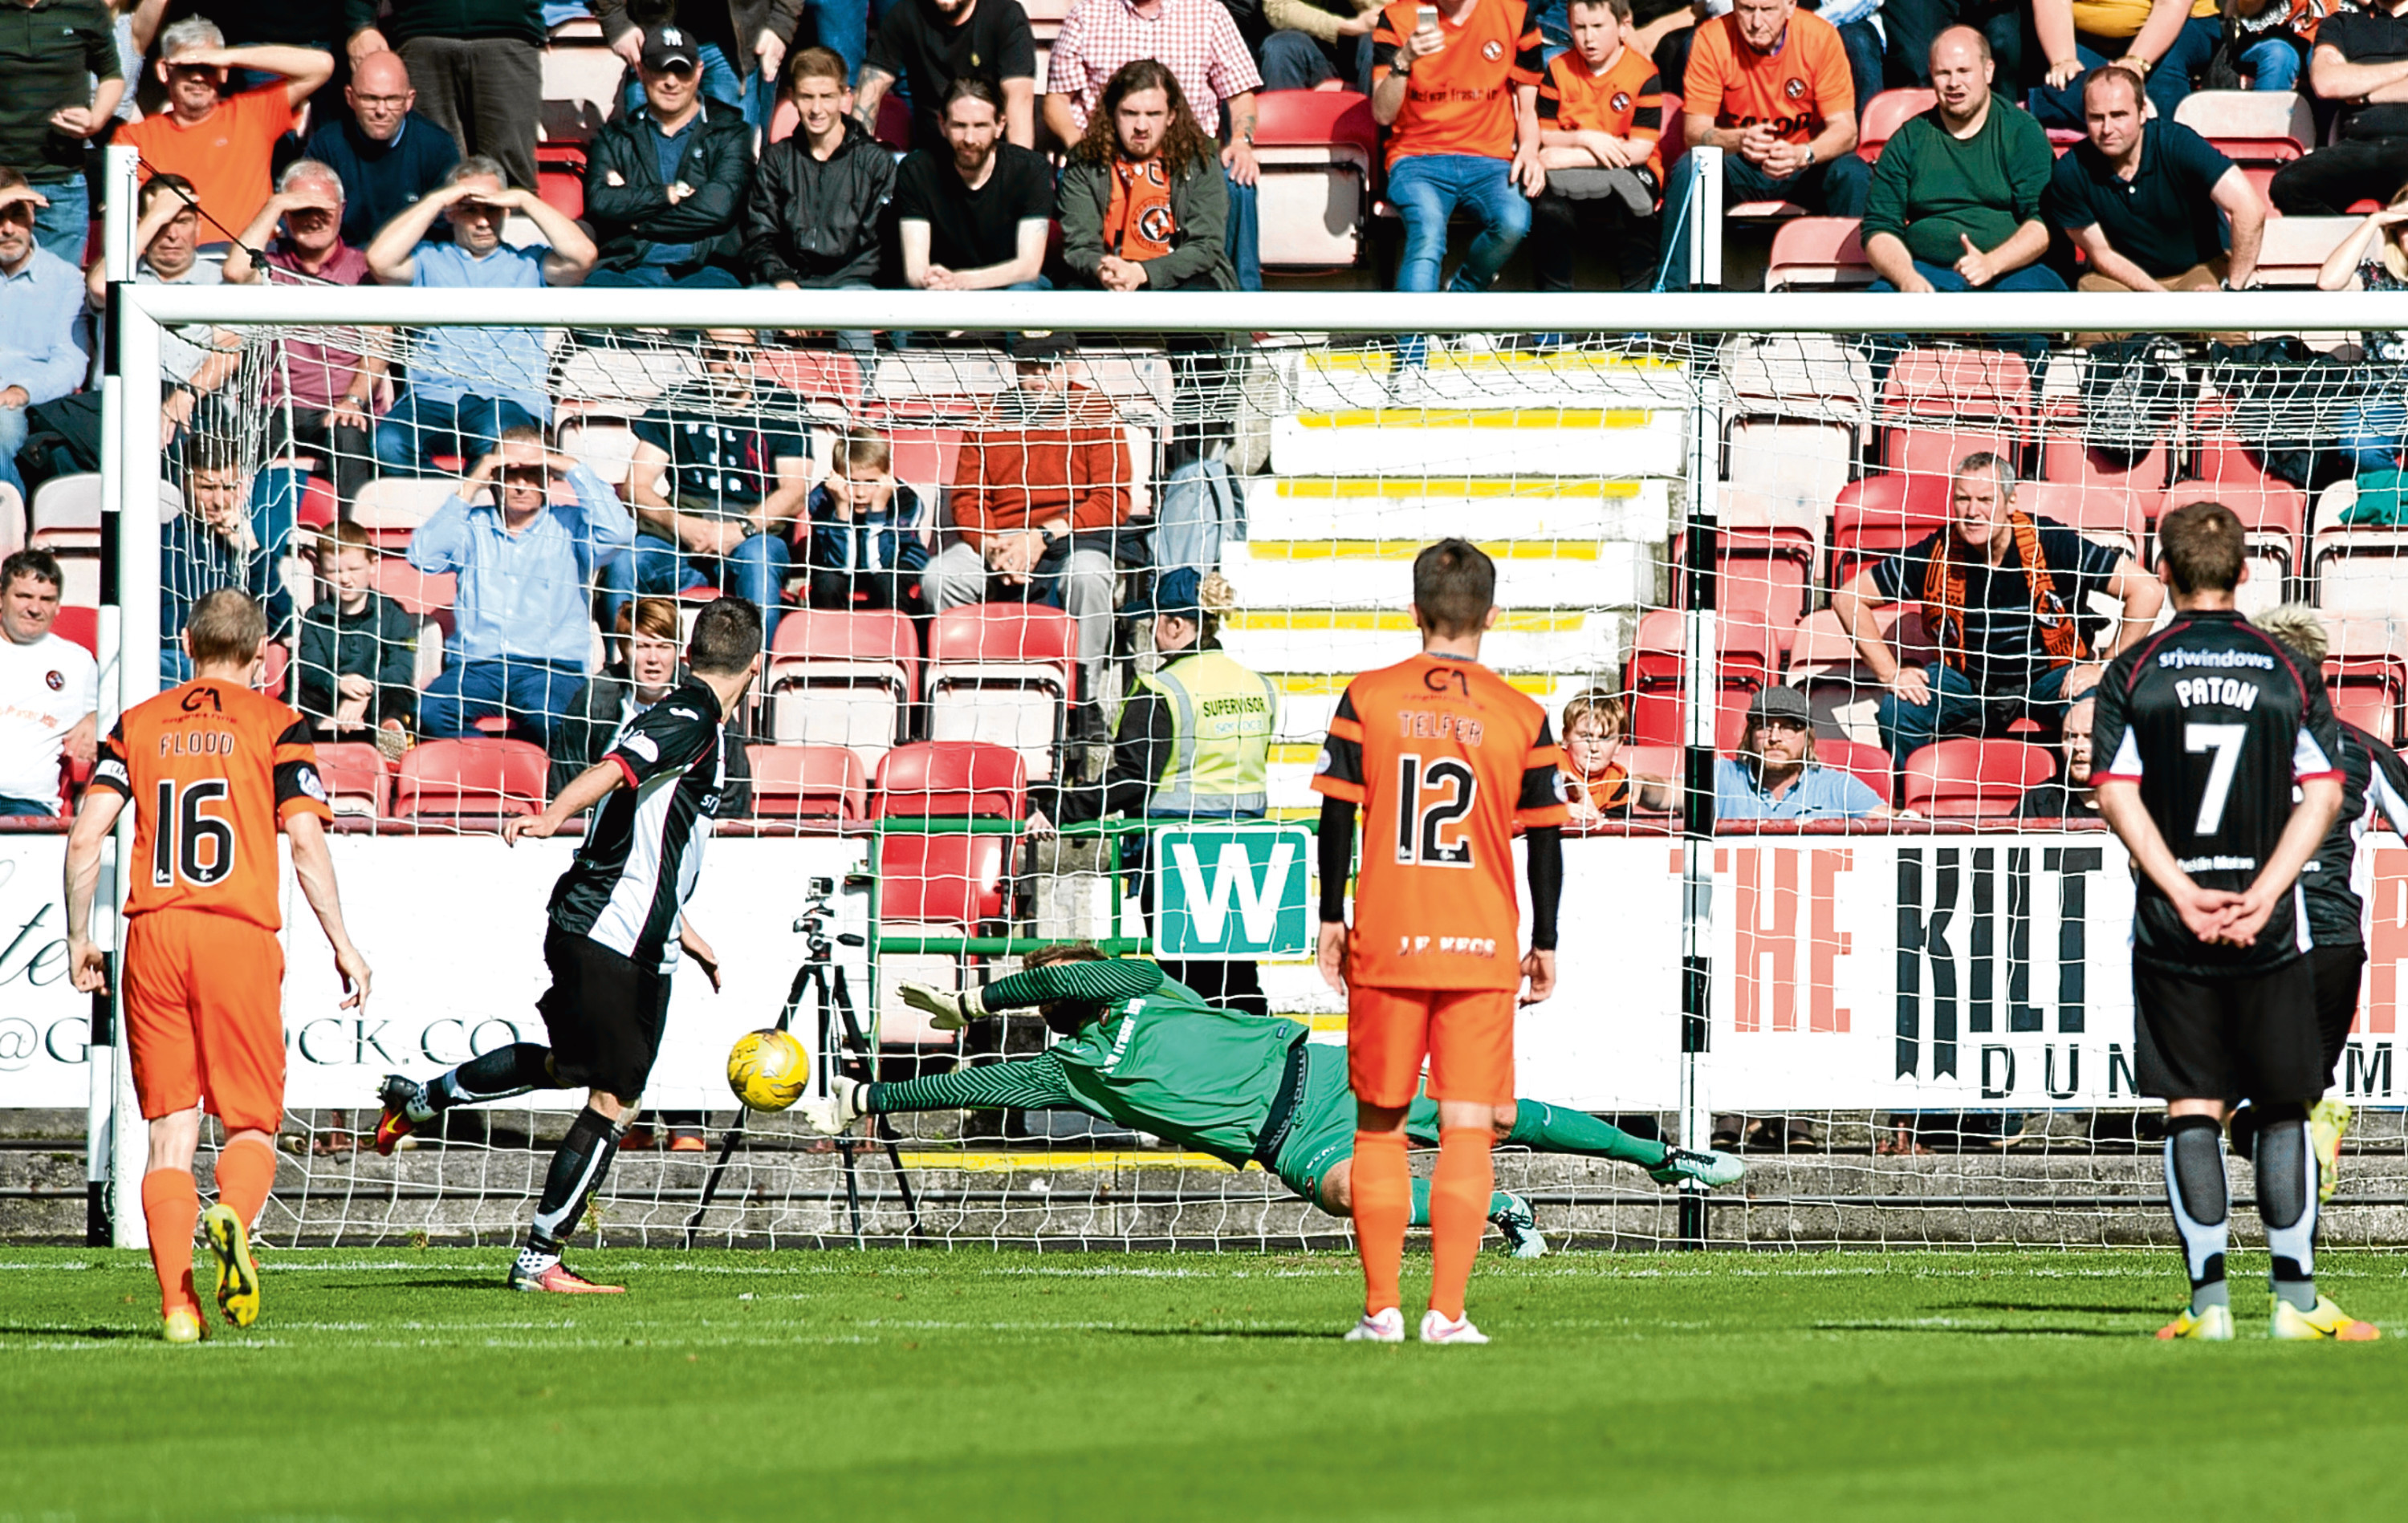 Cammy Bell was the hero of the day just over a year ago as the Dundee United keeper's three penalty saves helped his side to a memorable 2-1 win against Championship rivals Dunfermline.